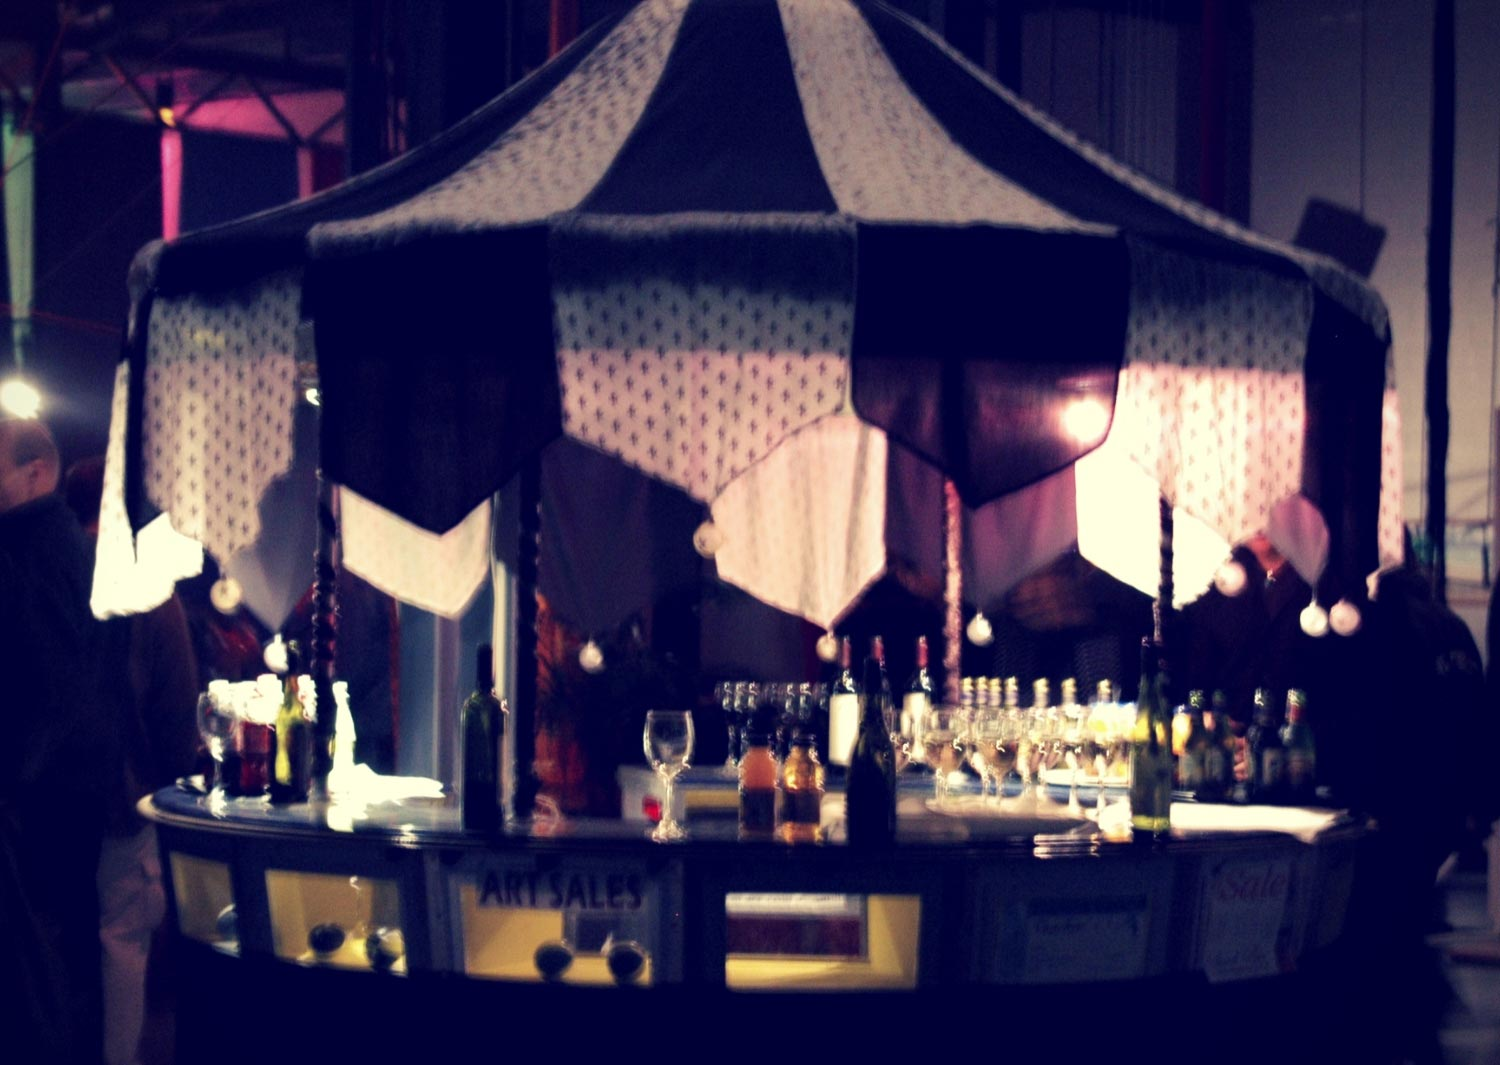 circus-arts-byron-bay-venue-hire-events-dinners-shows-performances-corporate-private-functions-3